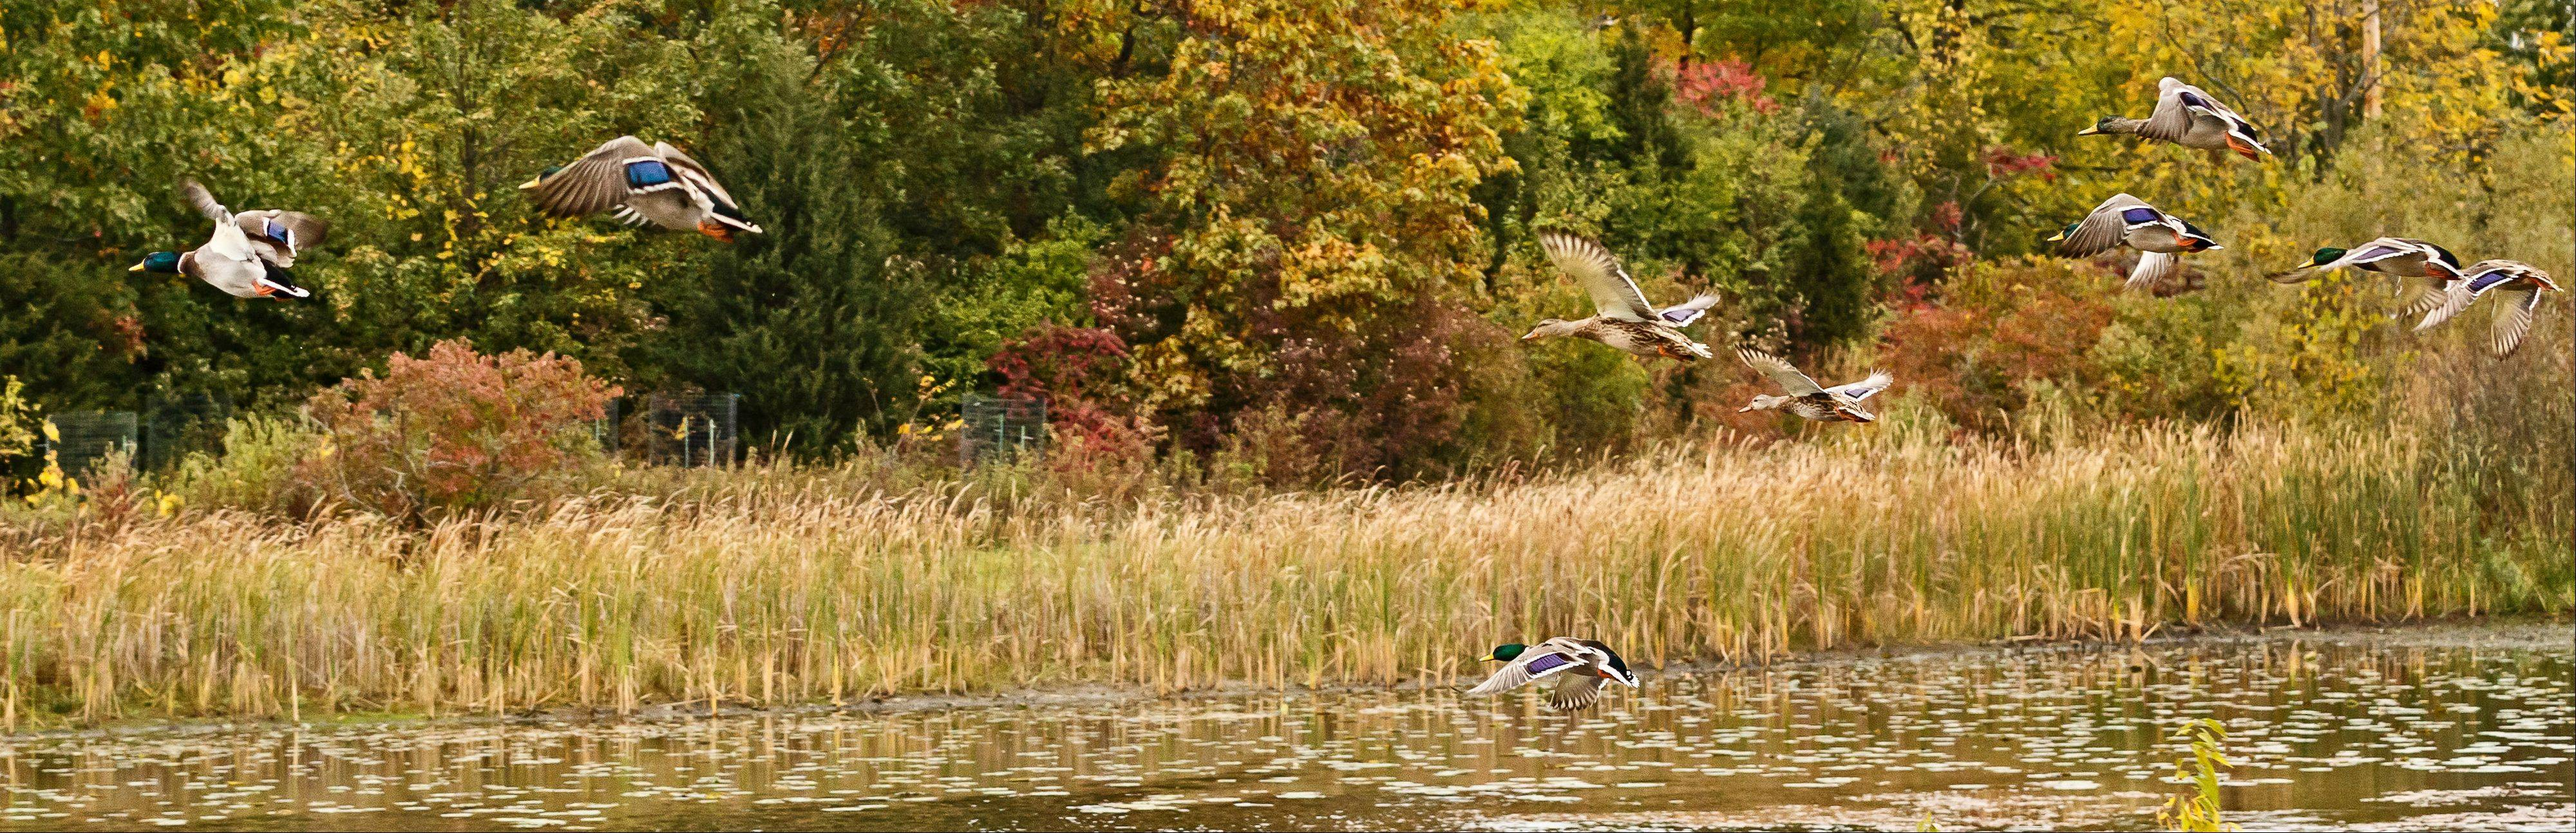 A flock of ducks lands in a pond in Grant Woods Forest Preserve in Ingleside on October 16th.